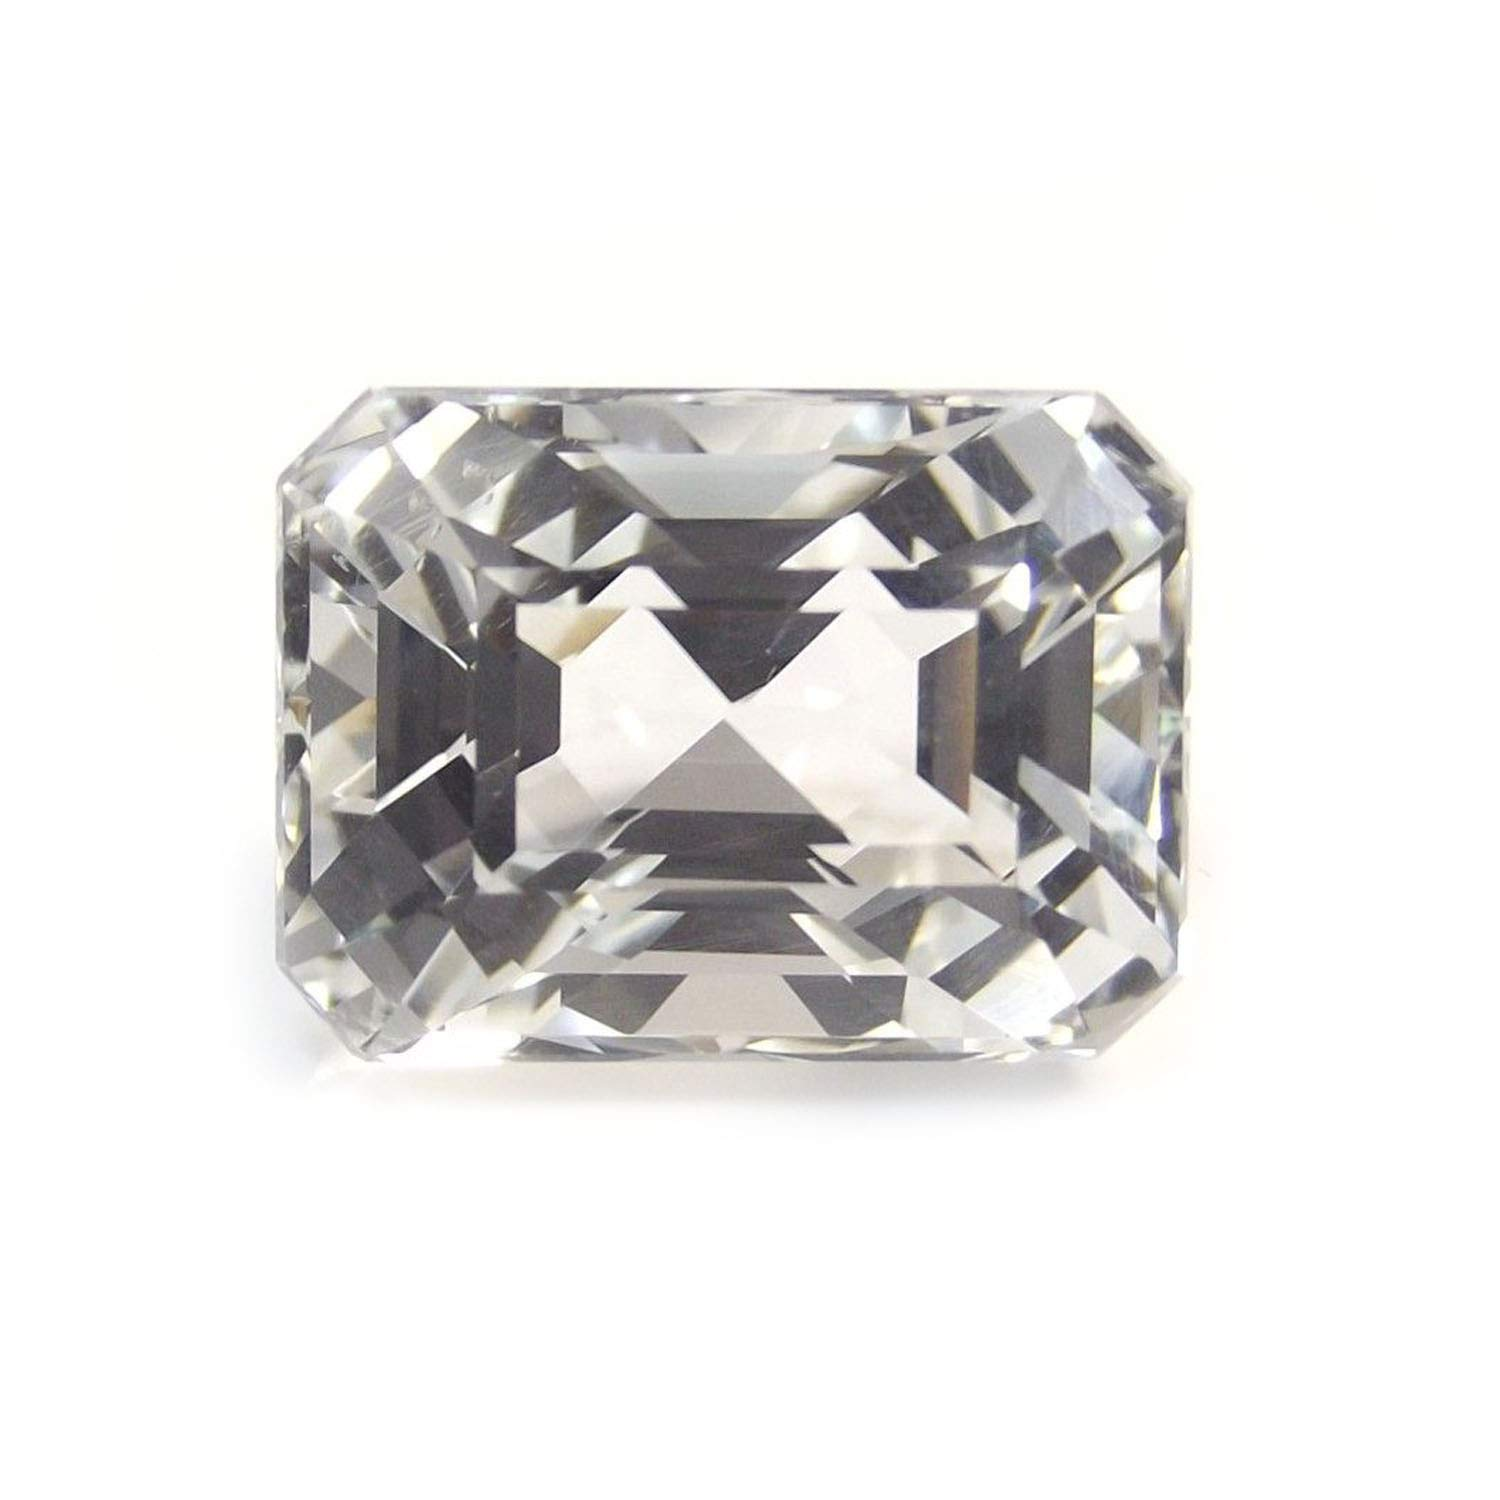 Neerupam collection Natural Nigerian White Topaz AAA quality 12X10 mm Octagon shape loose gemstone, Natural Nigerian White Topaz loose gemstone for jewelry making